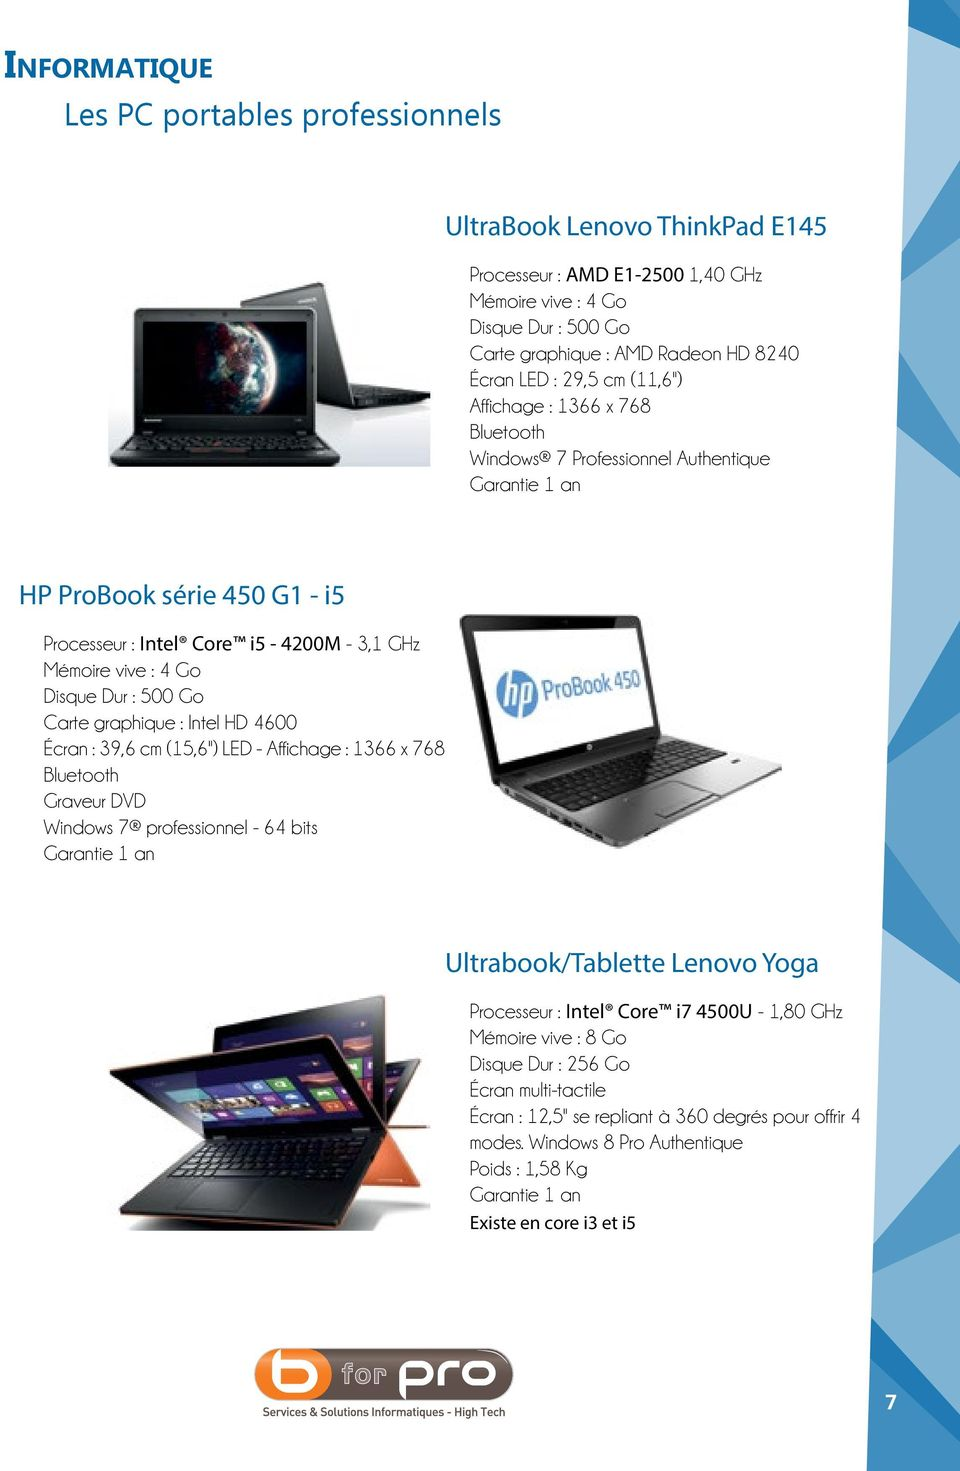 "Dur : 500 Go Carte graphique : Intel HD 4600 écran : 39,6 cm (15,6"") LED - Affichage : 1366 x 768 Bluetooth Graveur DVD Windows 7 professionnel - 64 bits Garantie 1 an Ultrabook/Tablette Lenovo Yoga"